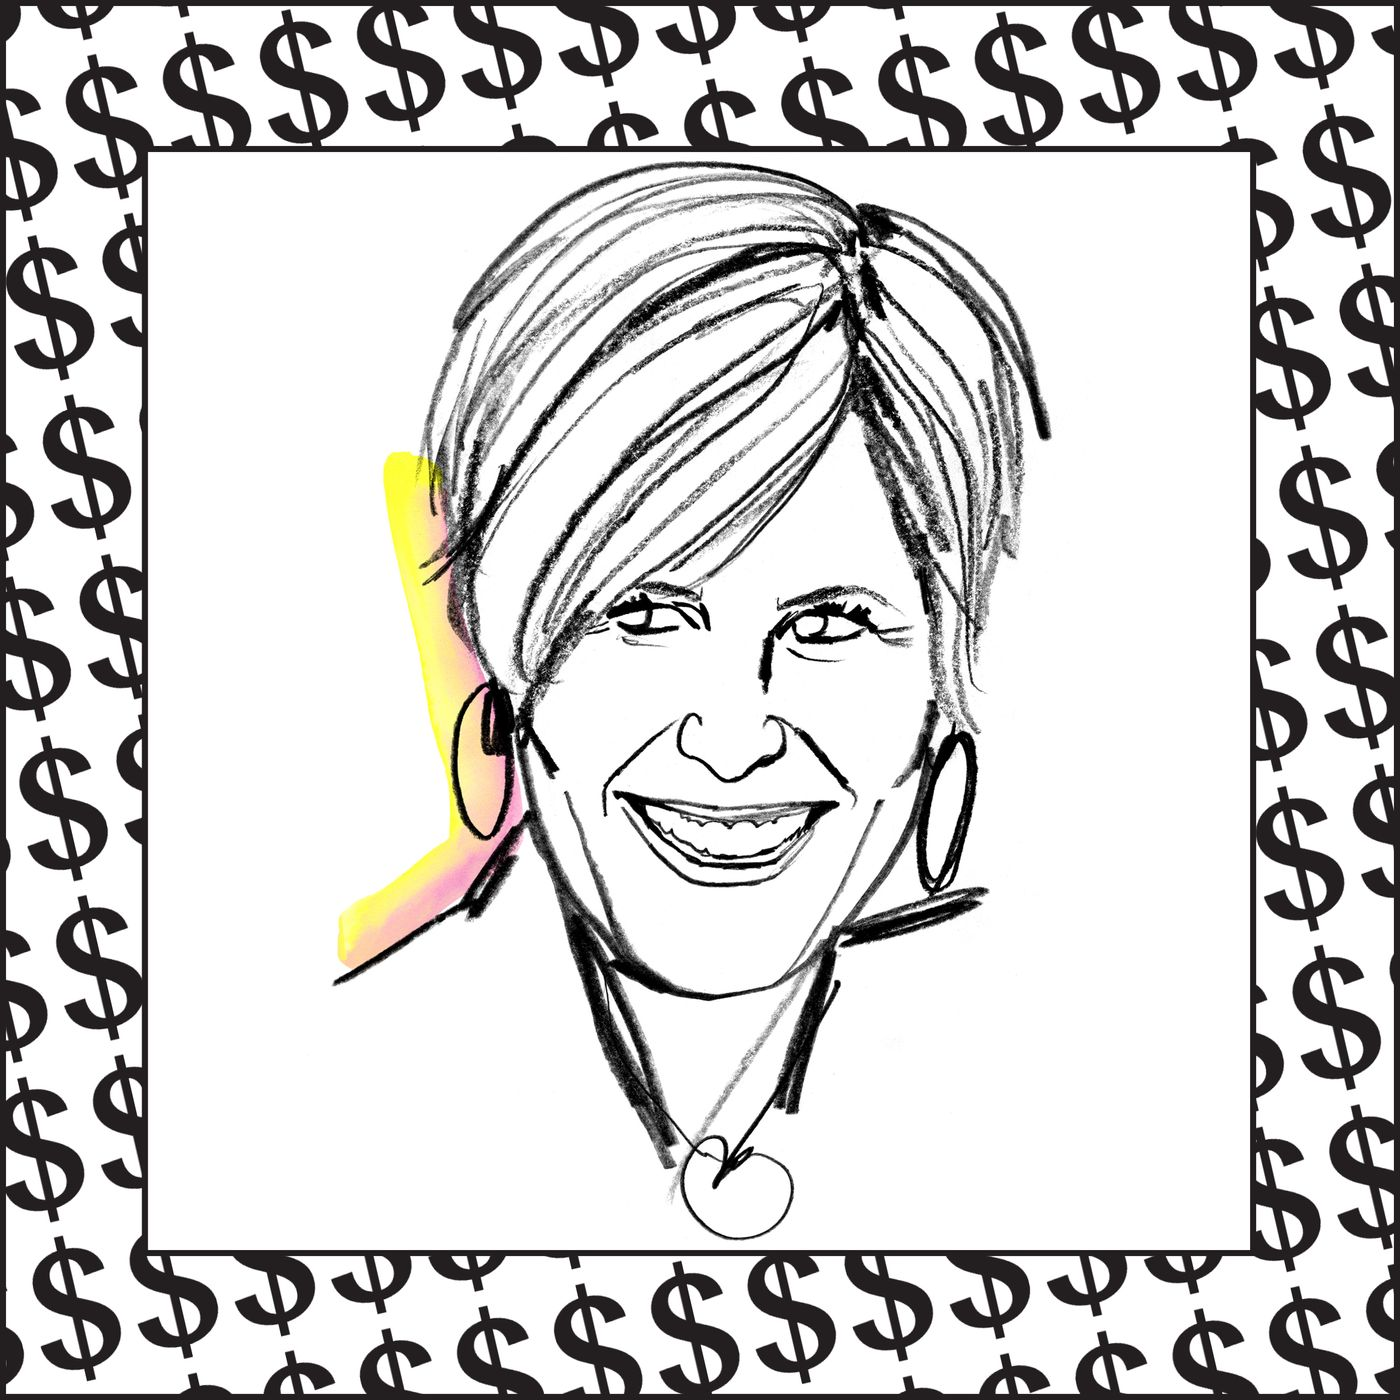 2021 Fixed Index Annuity Guide: Suze Orman and Annuity